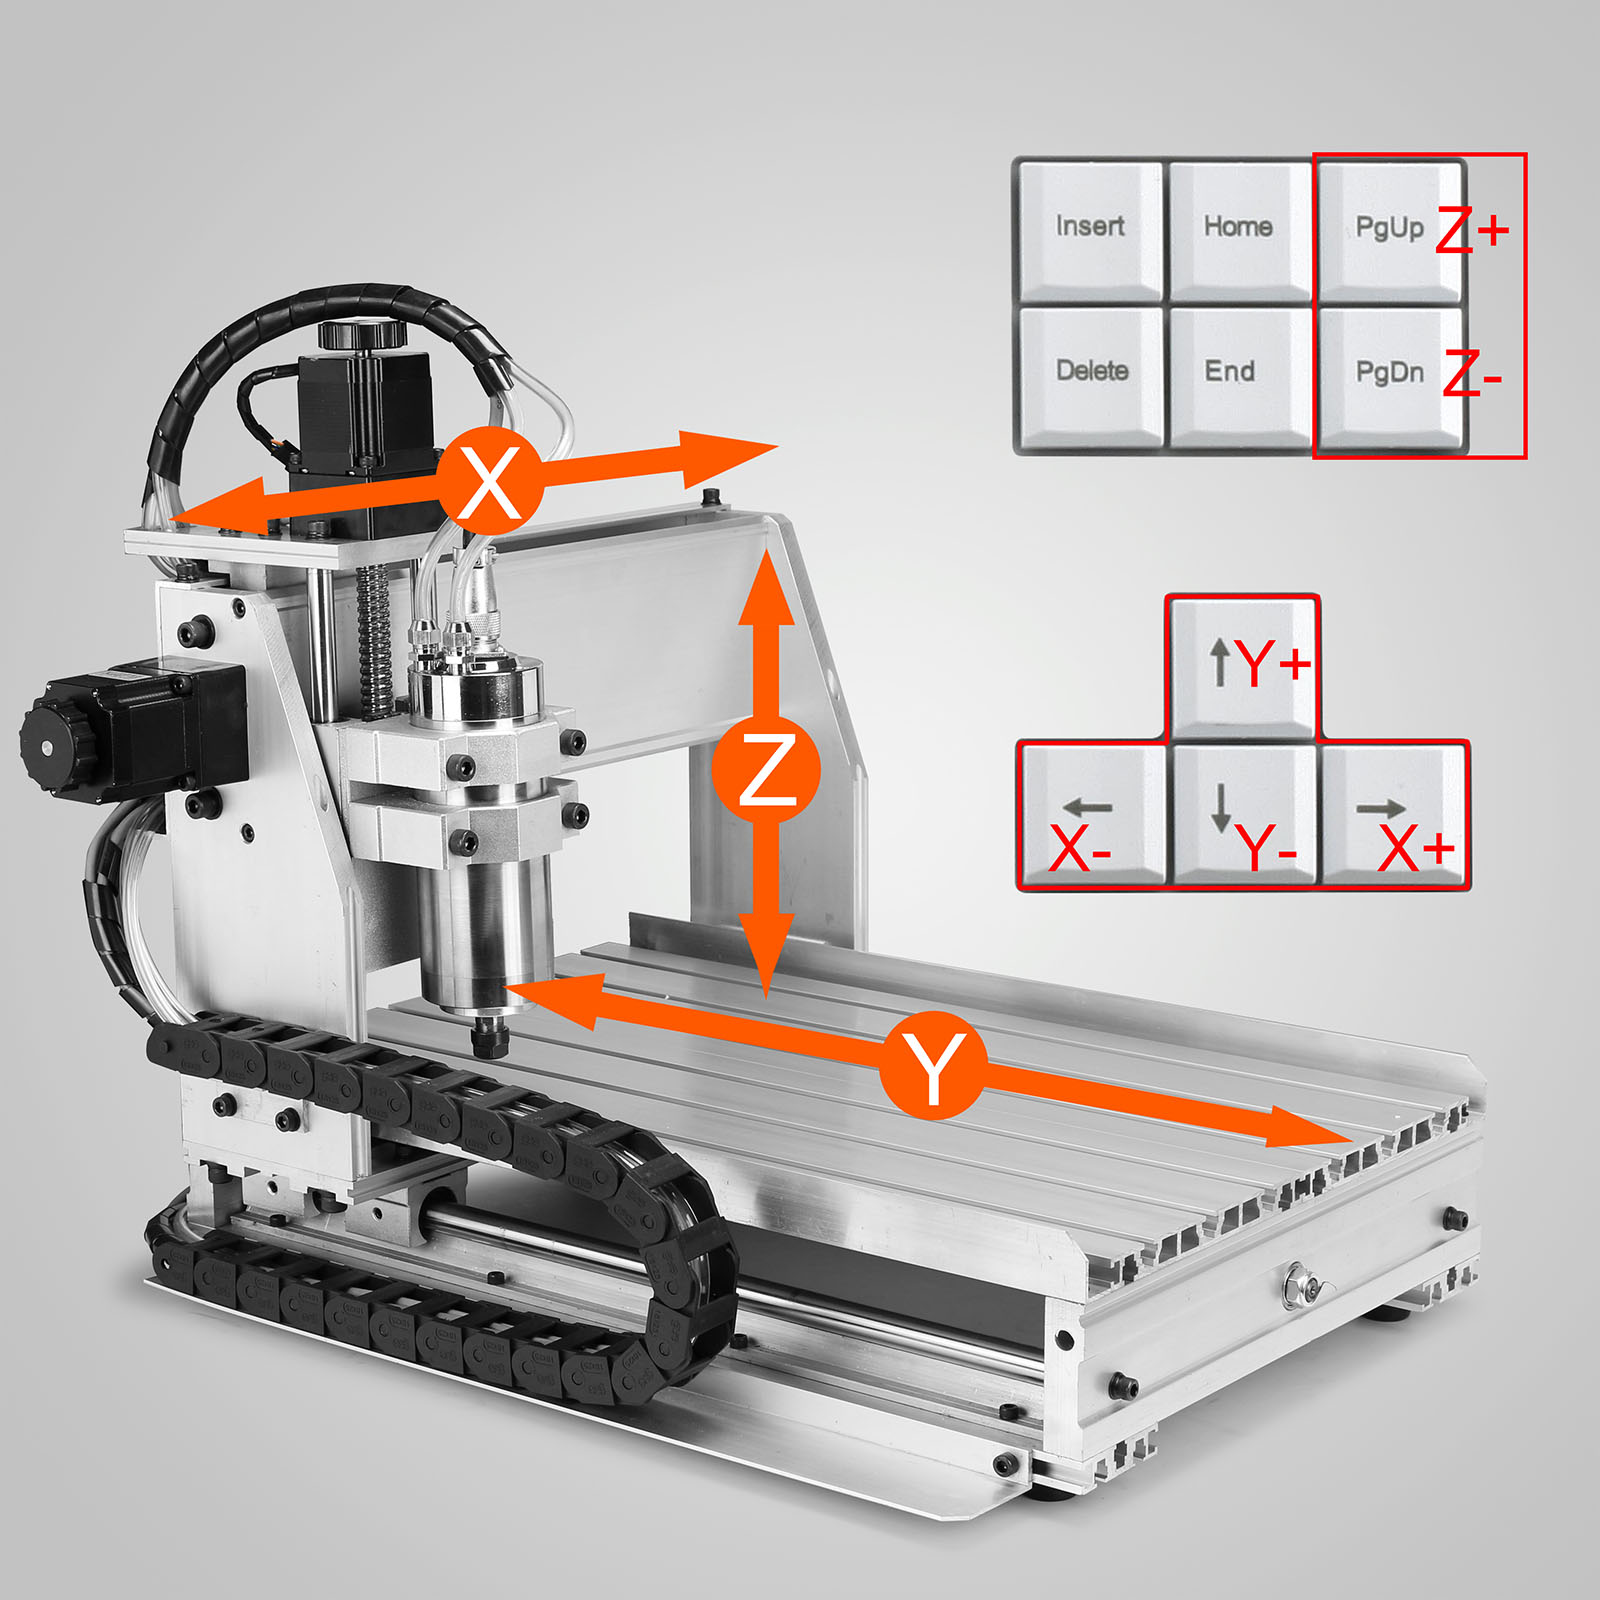 6040t 3 Axis Usb Cnc Router Engraver Engraving Cutter Machine 4 Wiring Diagram Milling Port Ebay